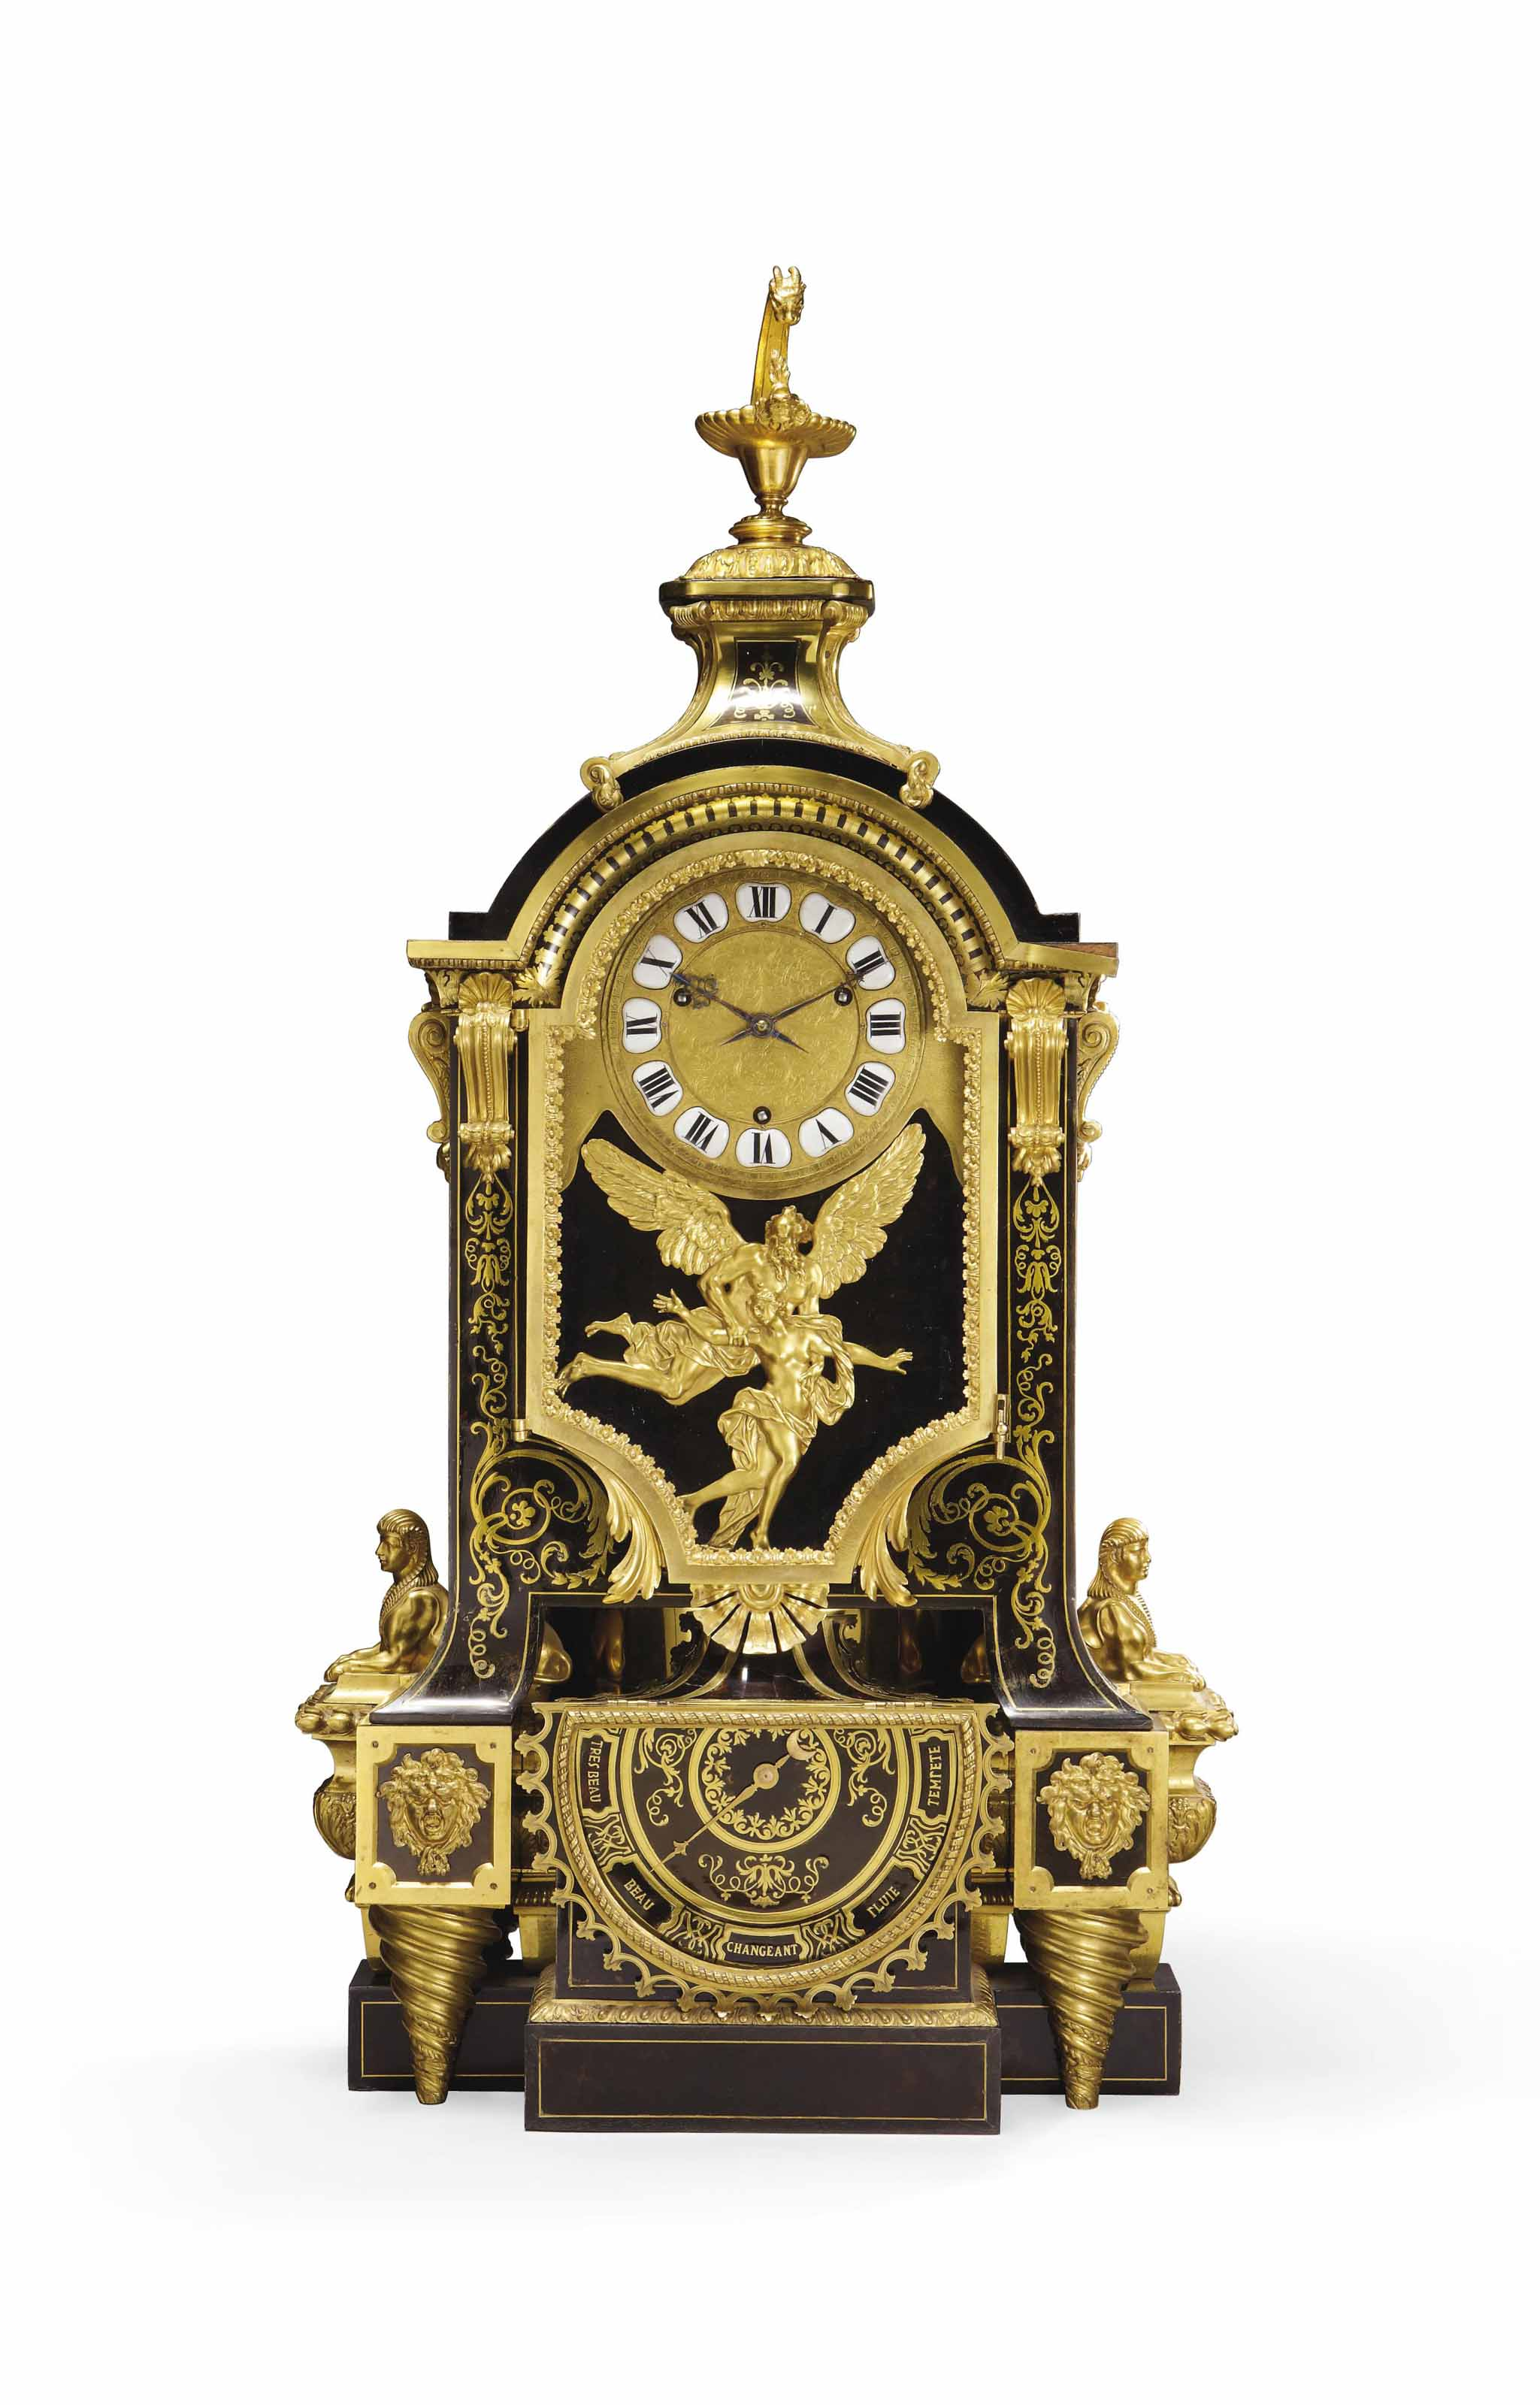 A LATE LOUIS XVI ORMOLU-MOUNTED BRASS AND TORTOISESHELL-INLAID BOULLE MARQUETRY AND EBONY MANTEL CLOCK